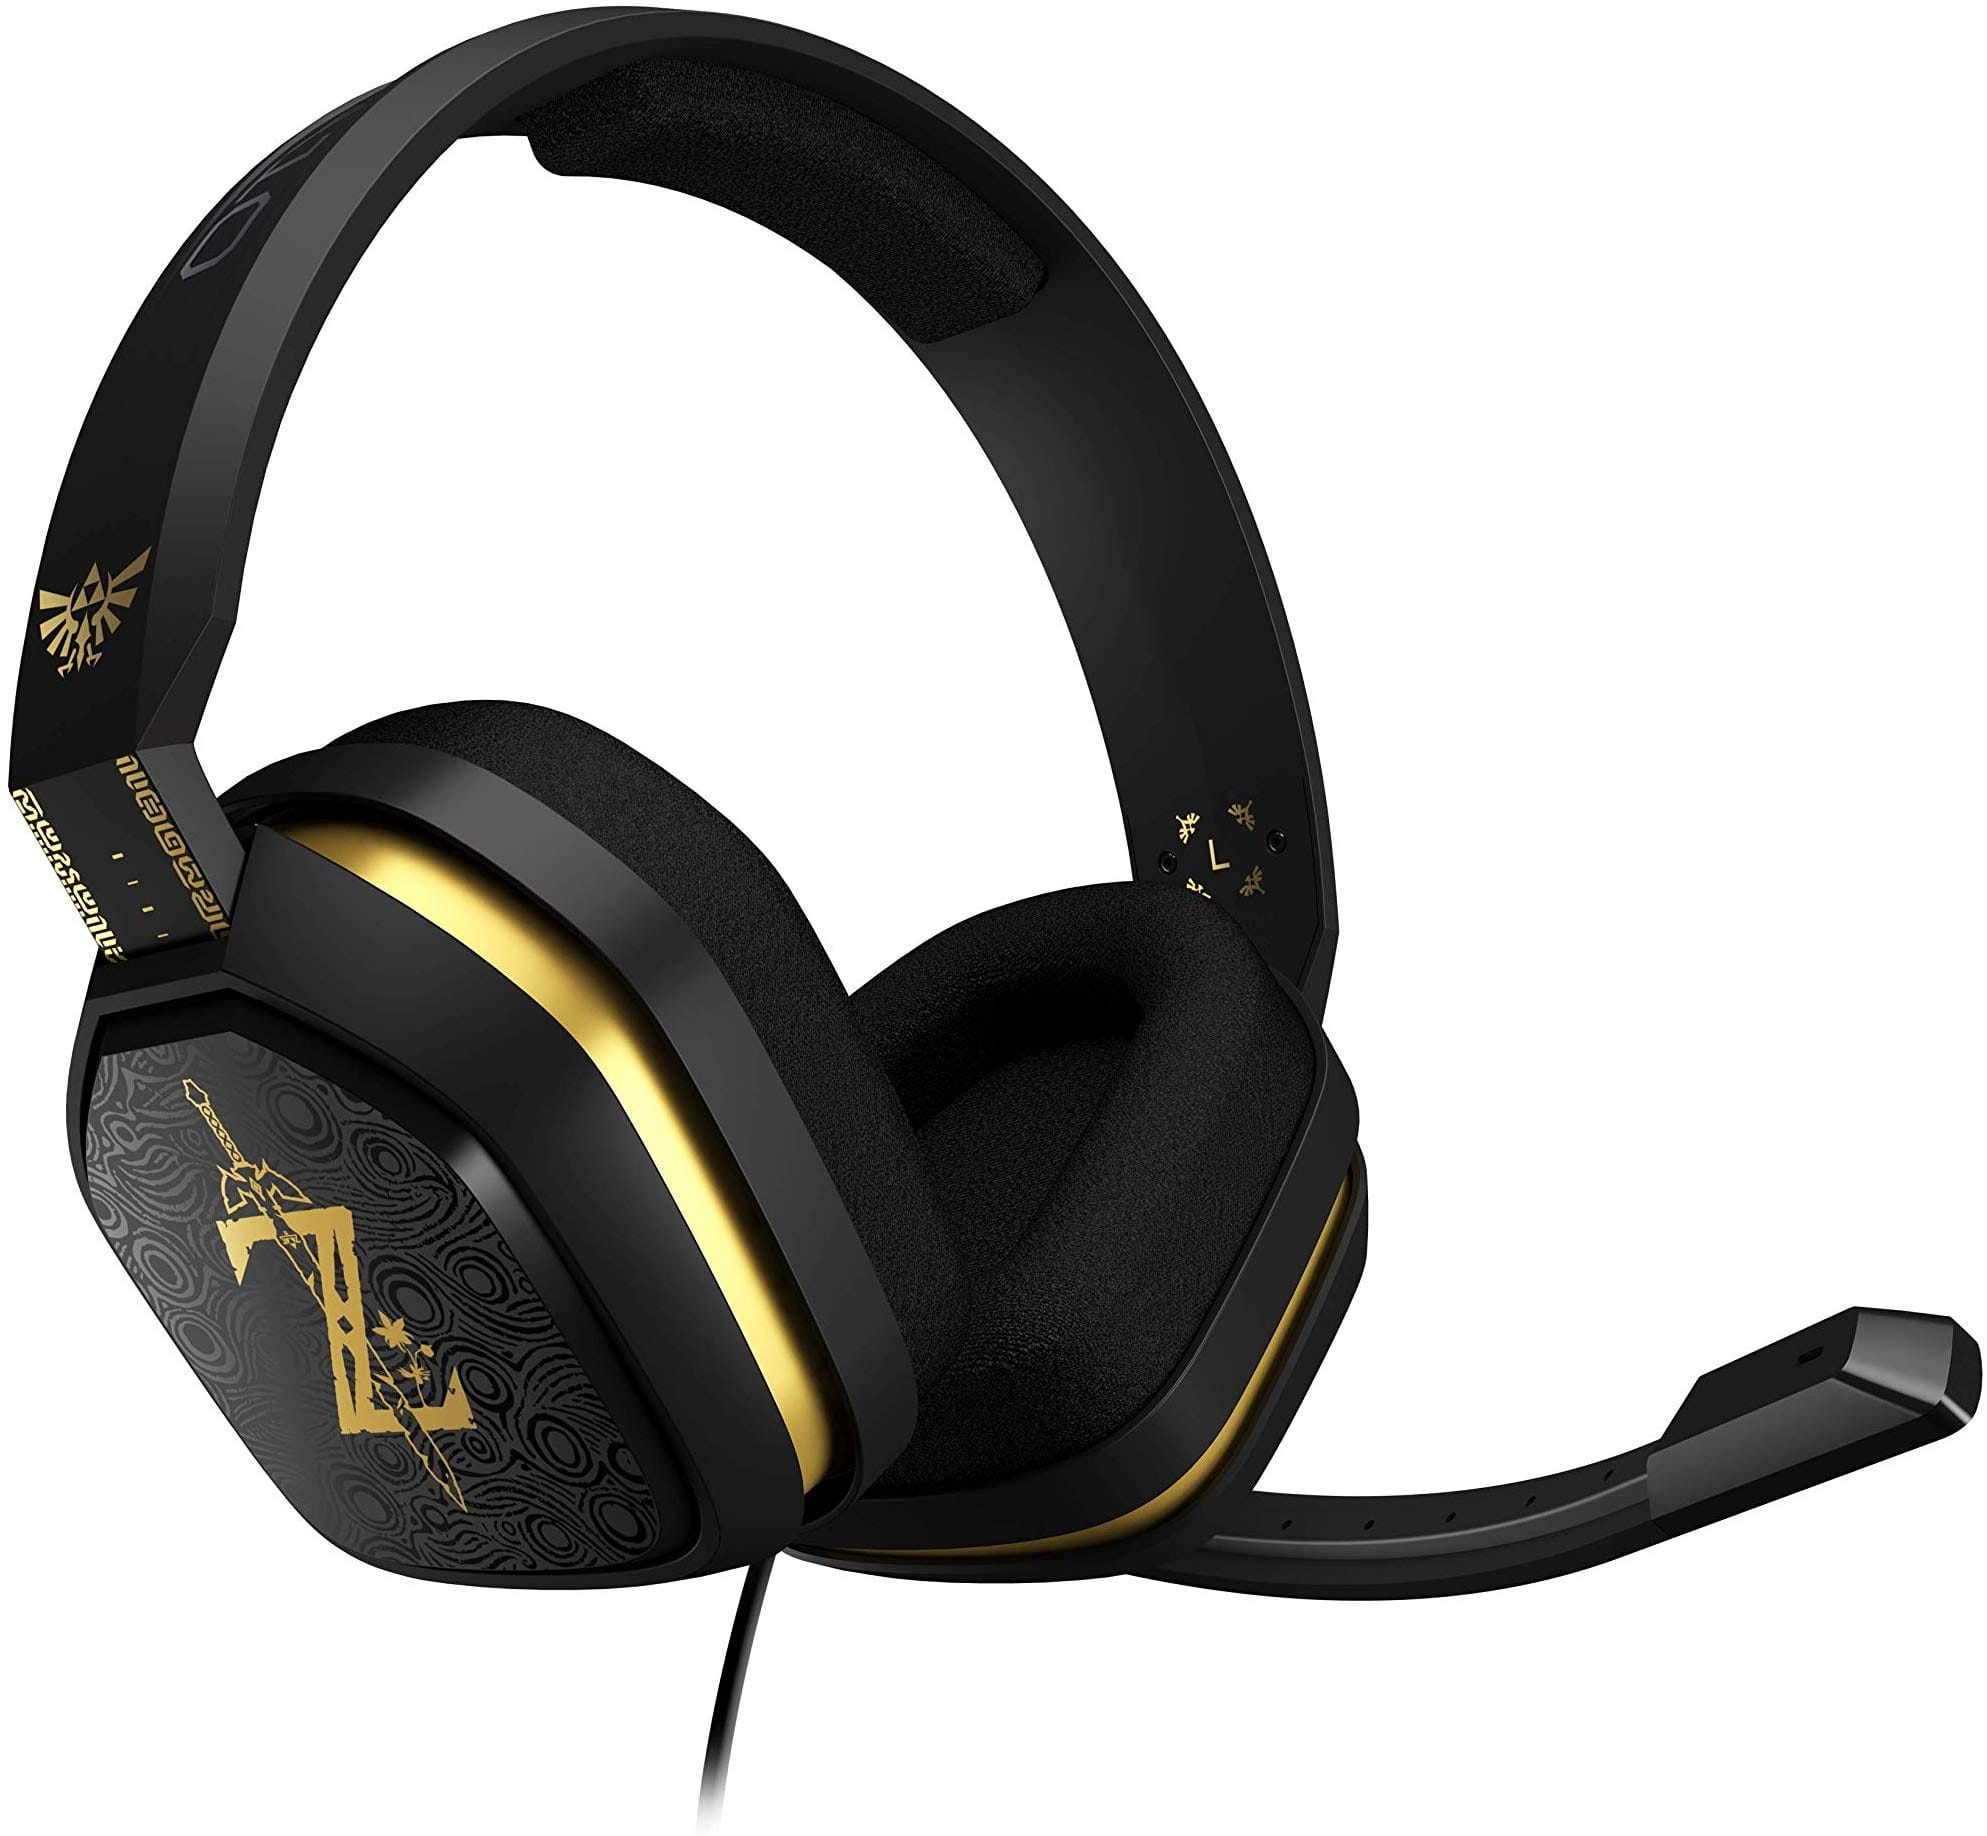 ASTRO A10 Legend Of Zelda BOTW themed Gaming Headset $20 at Best Buy